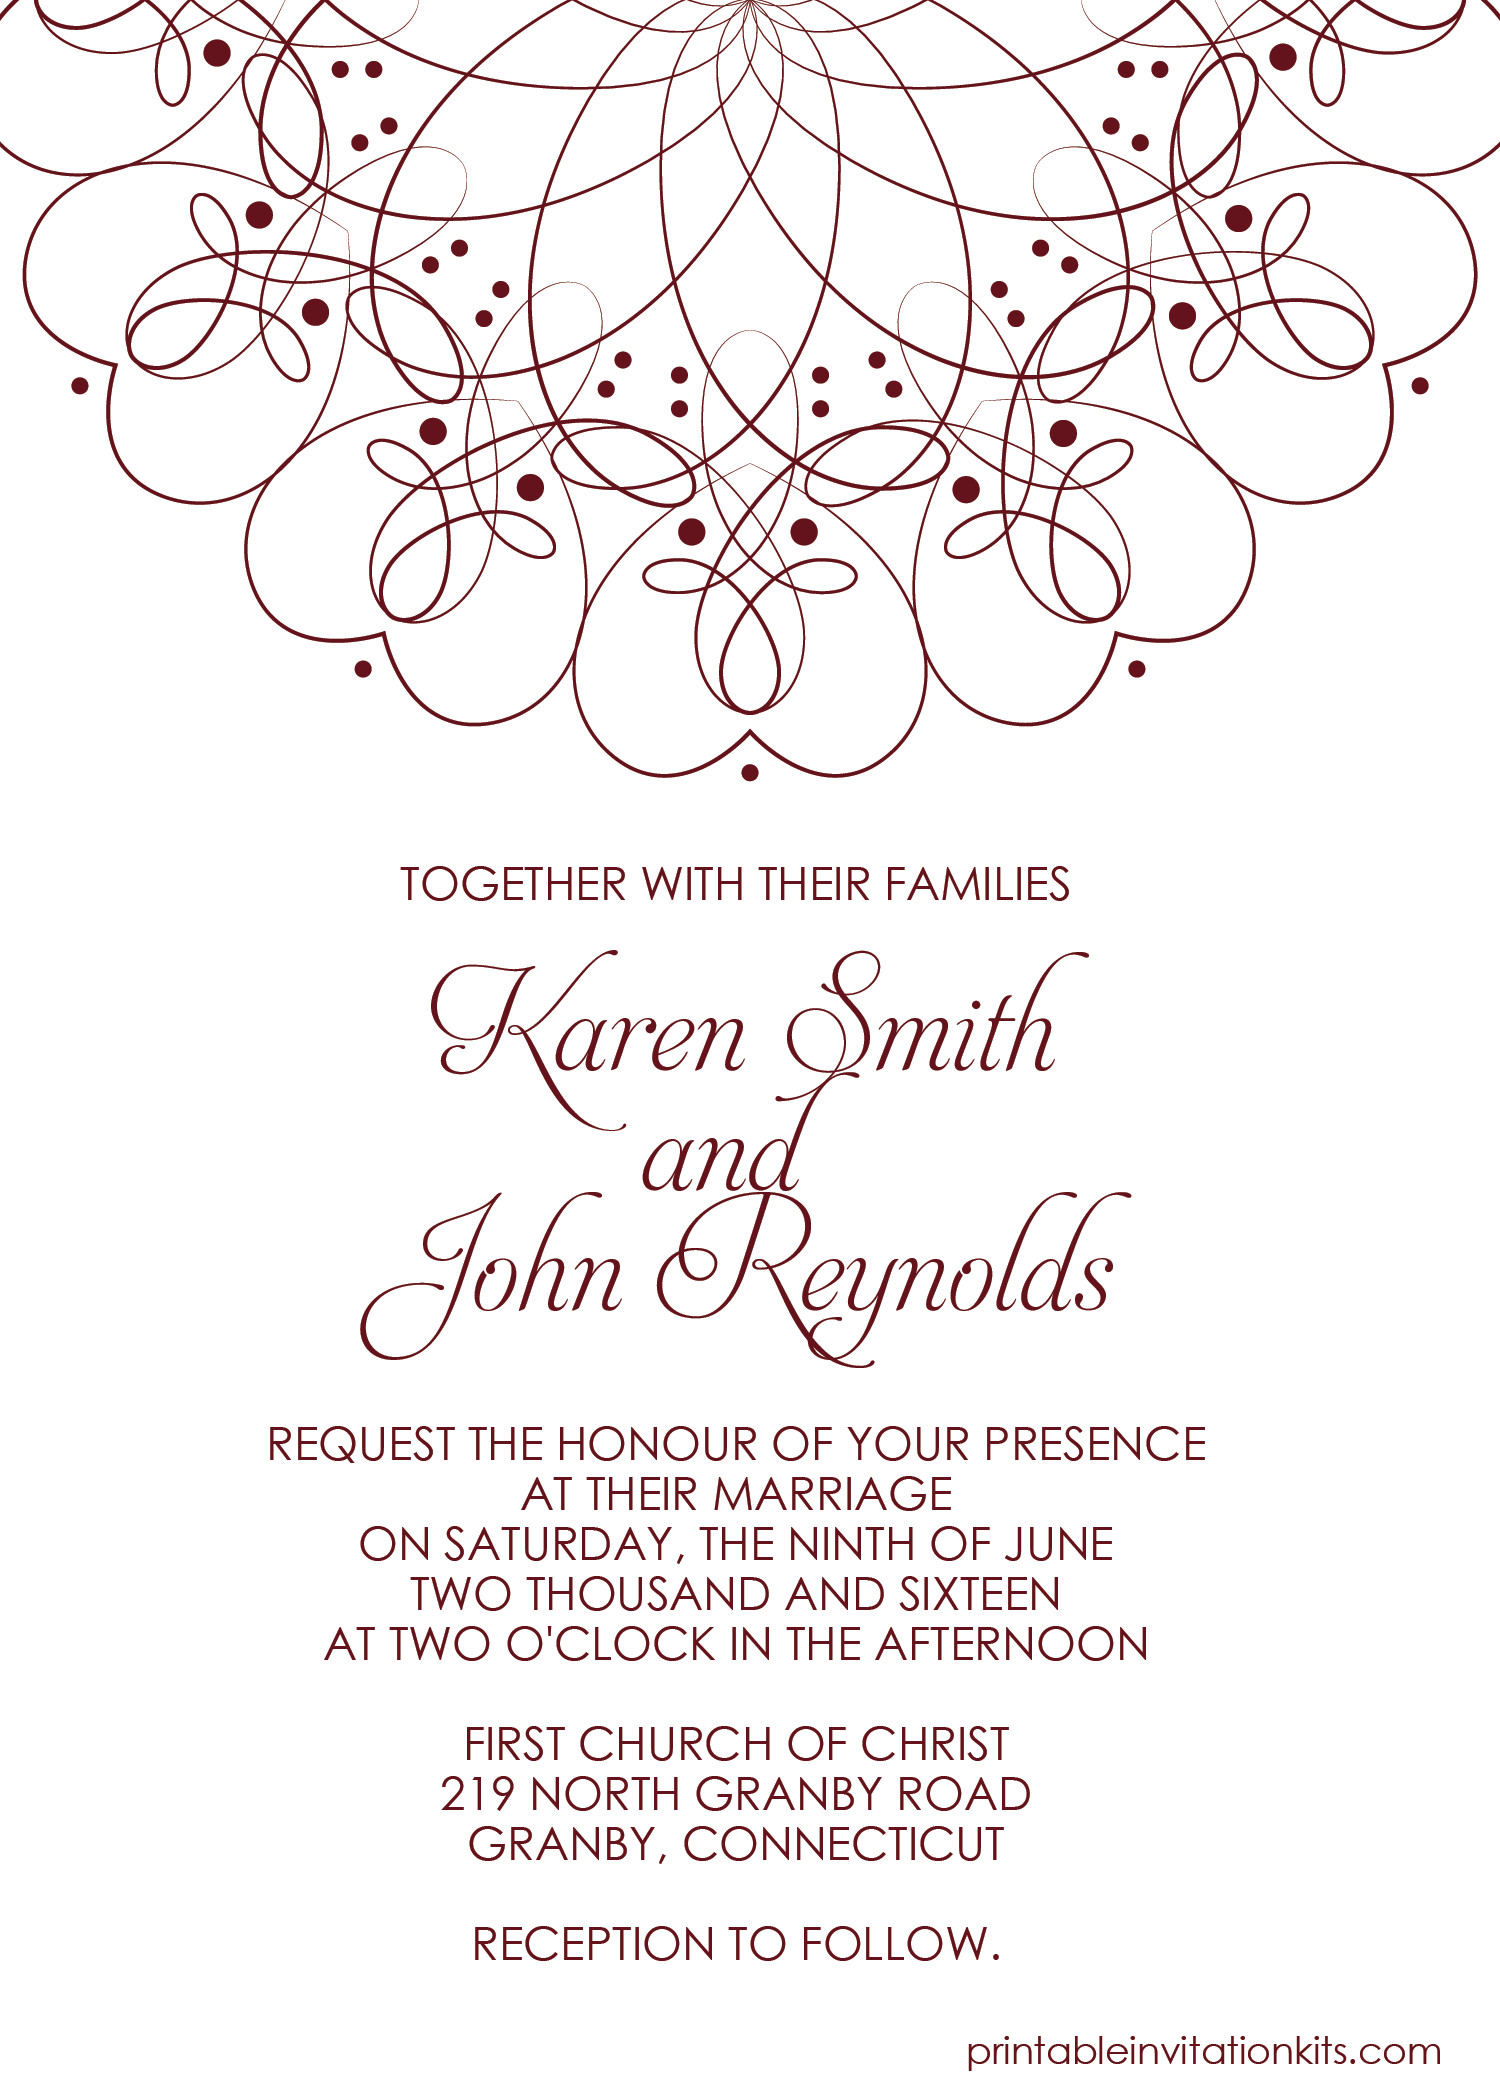 Template for Wedding Invitations Spiral Border Invitation Free Pdf Template for Weddings